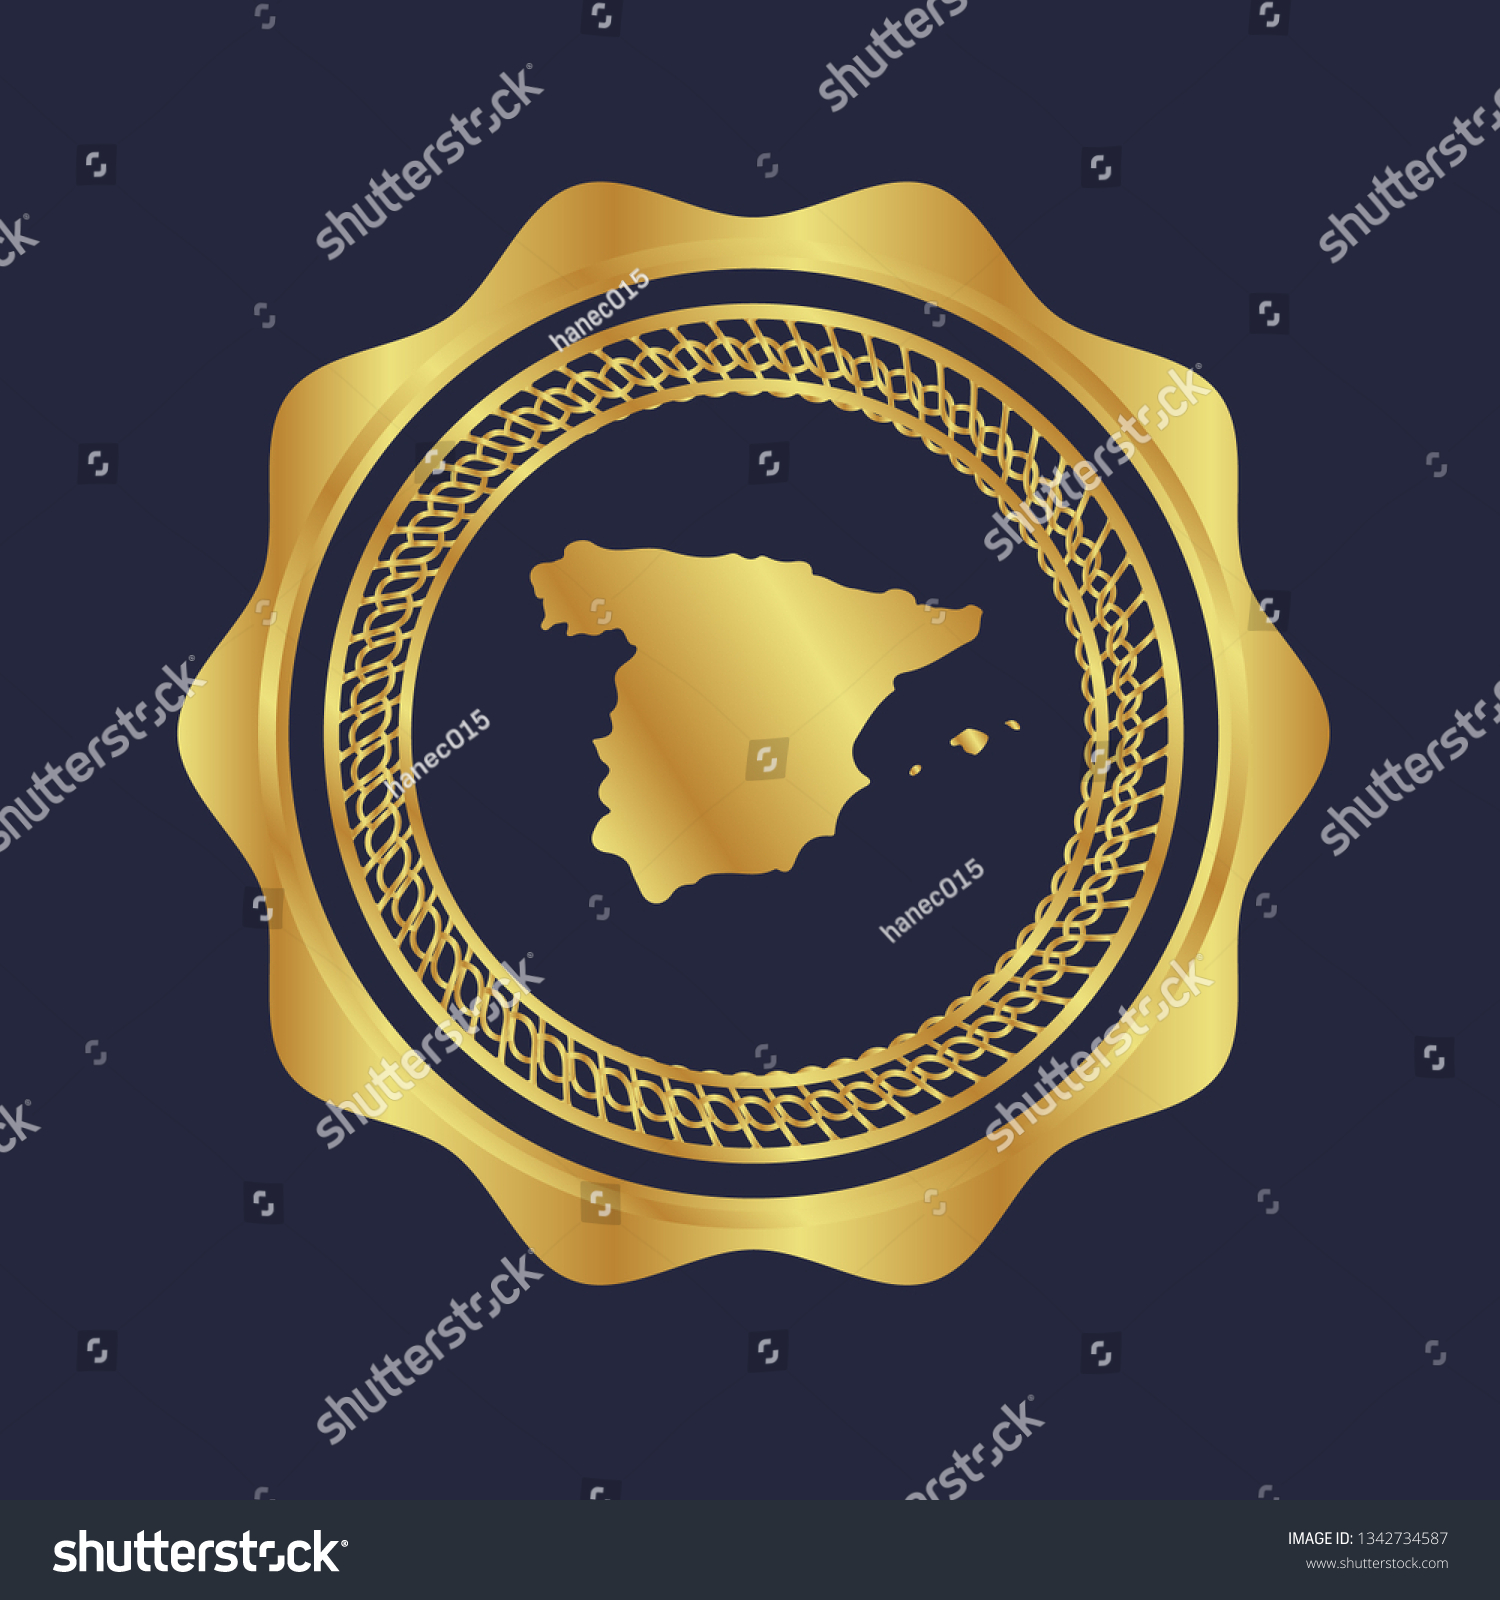 Map Of Spain To Label.Gold Button Spain Map Gold Spain Stock Vector Royalty Free 1342734587